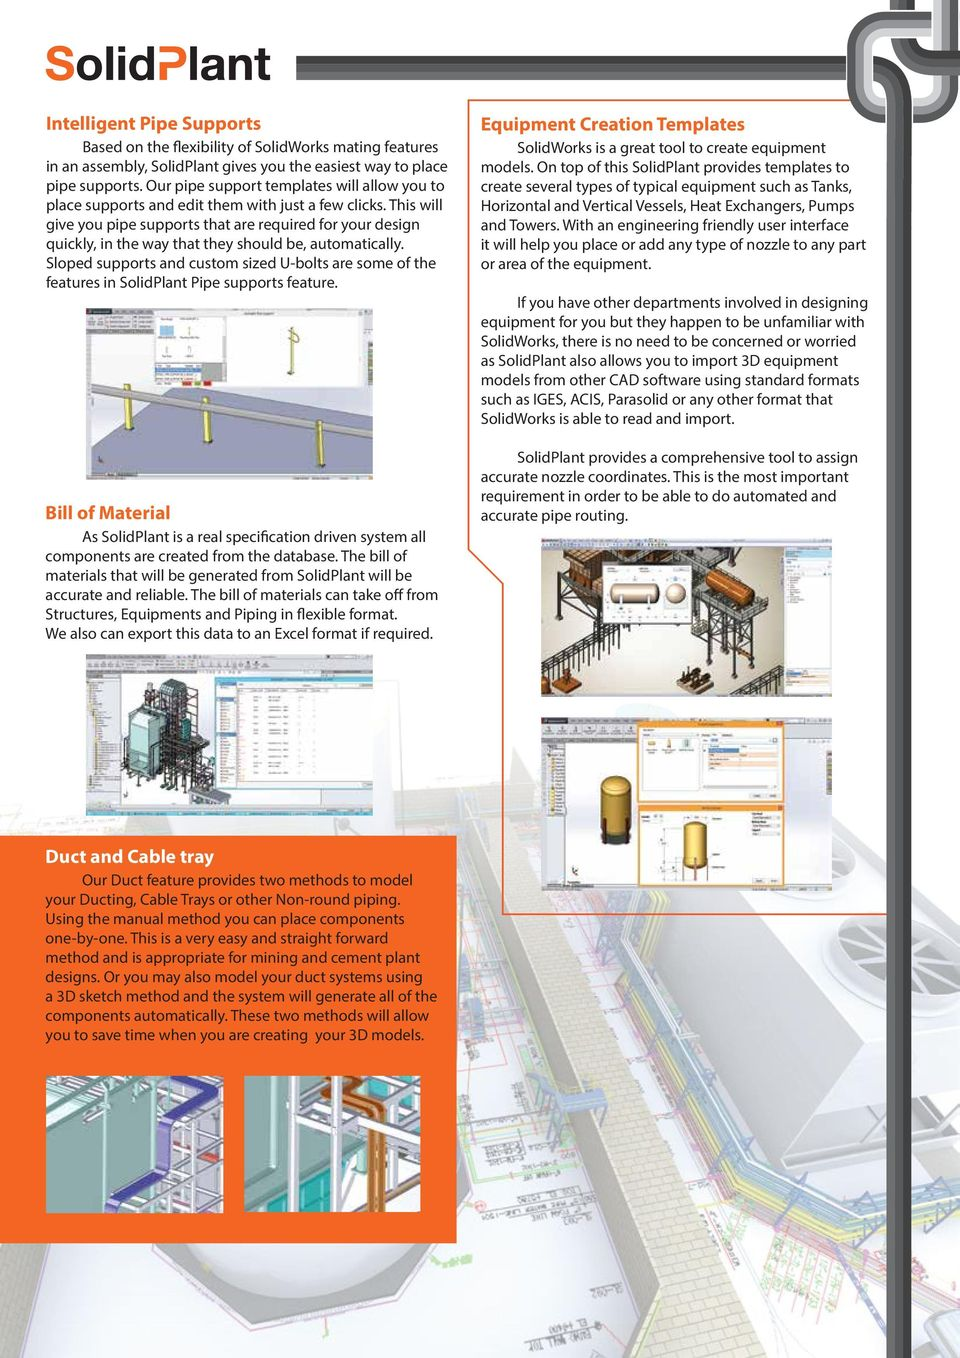 Comprehensive Plant Design For Solidworks Route It Your Way Pdf Piping Diagram This Will Give You Pipe Supports That Are Required Quickly In The